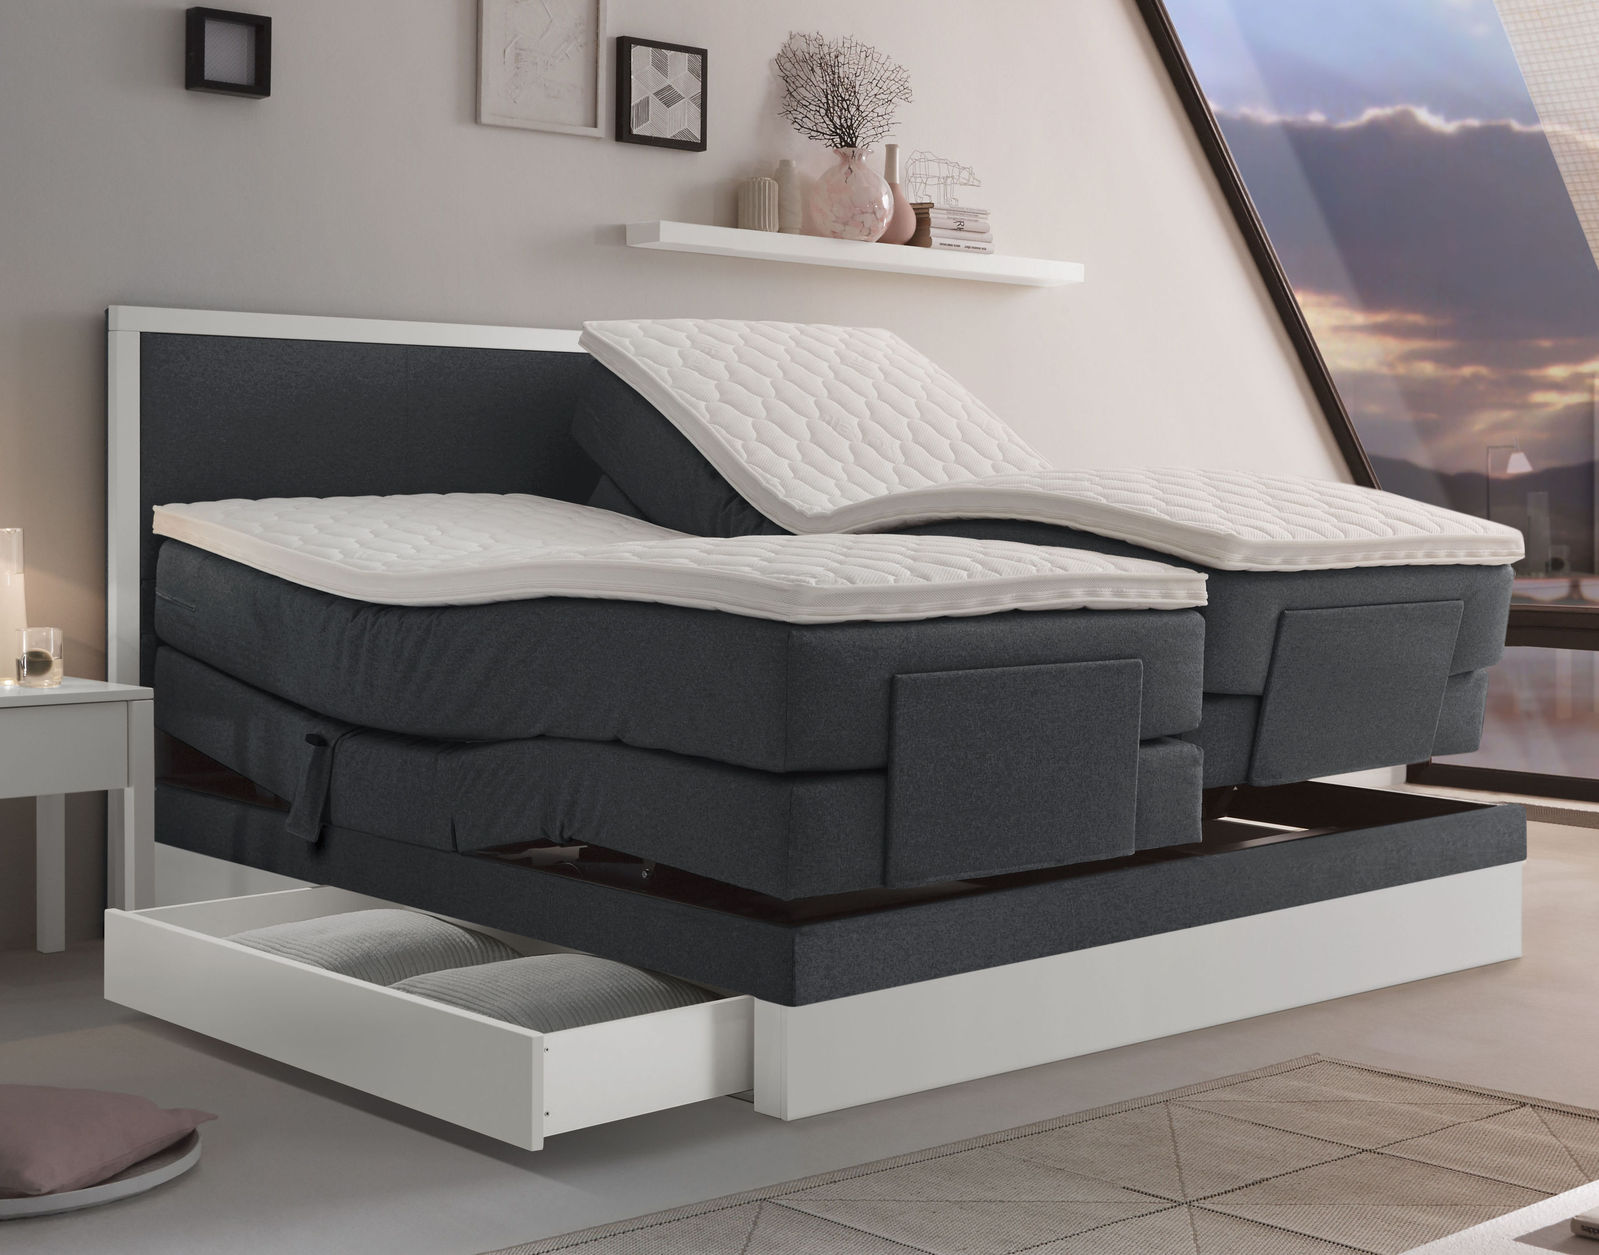 boxspringbett mit schubladen boxspringbett mit schubladen design bett von rechteck. Black Bedroom Furniture Sets. Home Design Ideas